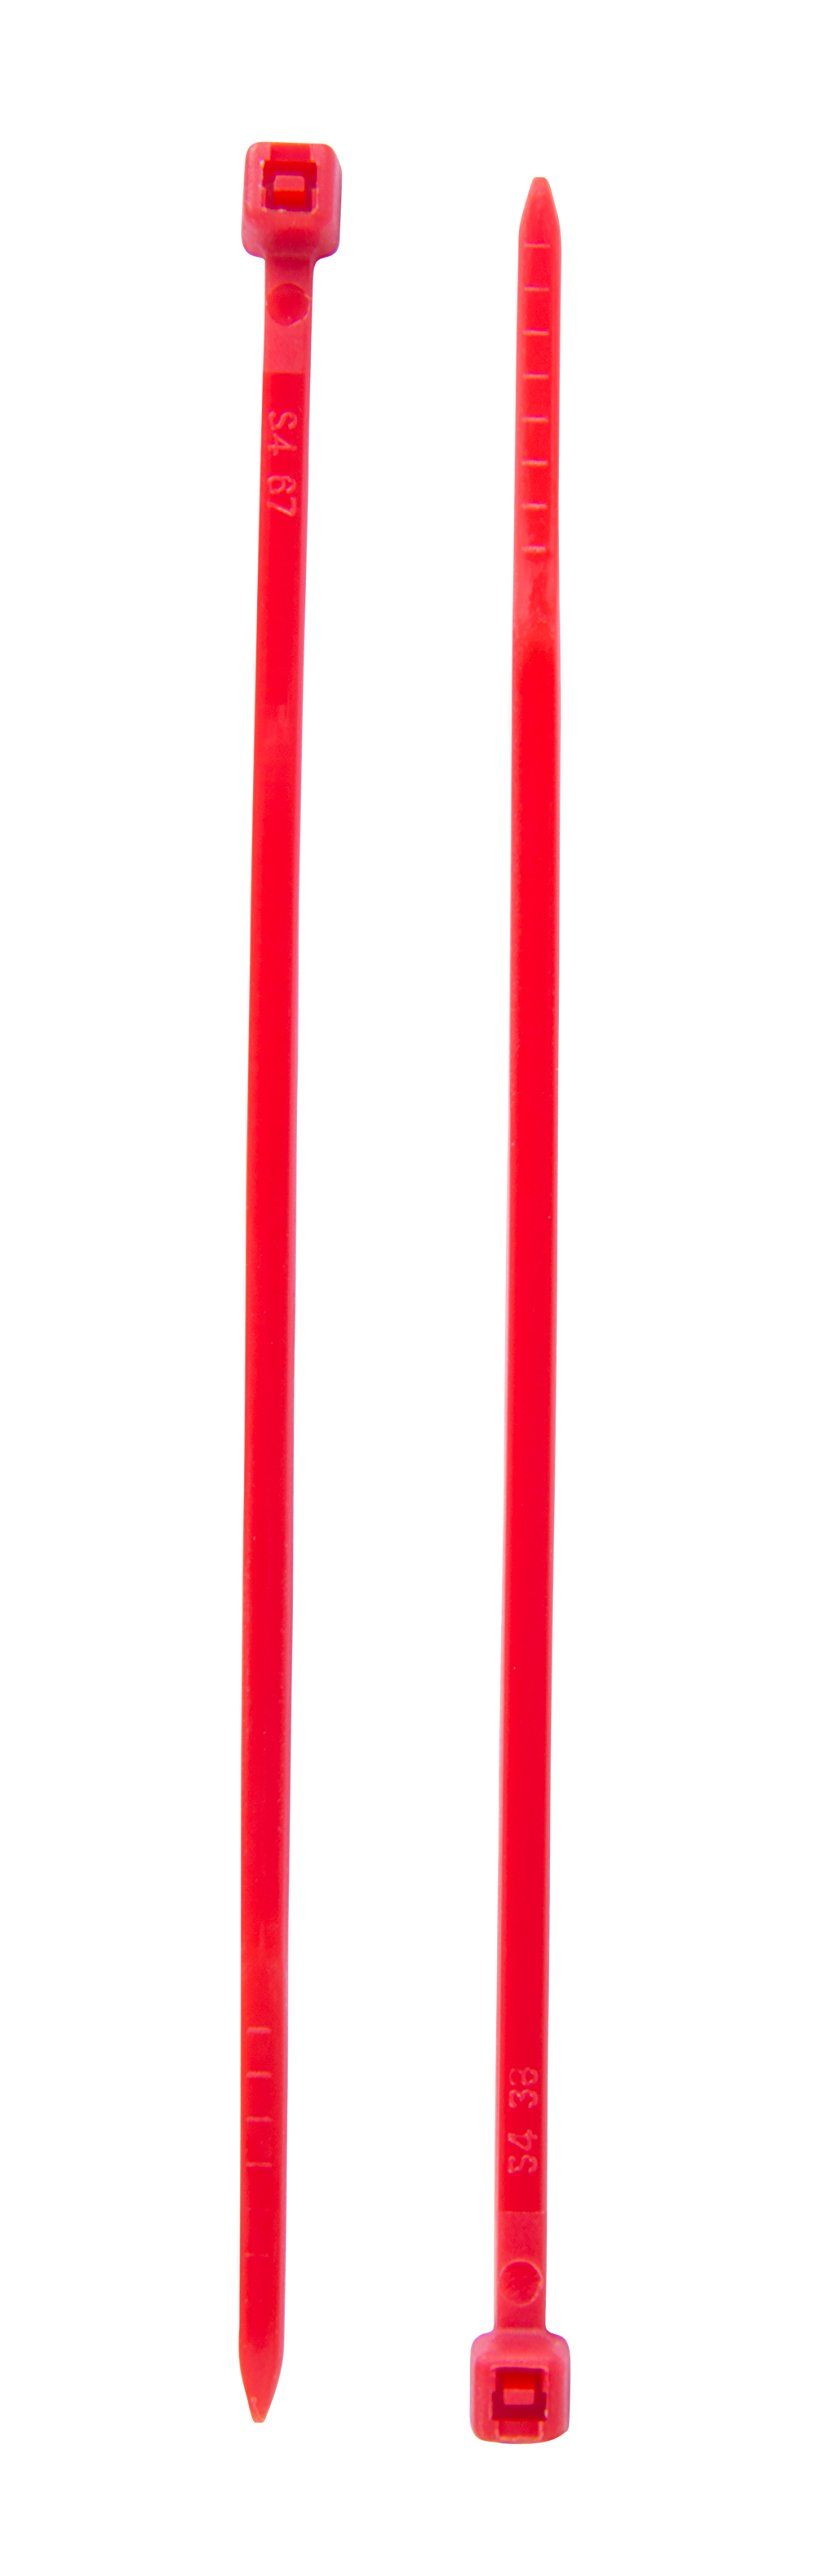 Creative Solutions CS-204R Cable Tie, 4 in, 18 lb, Craft, Wrap & Decorate, Zip Tie, 50 Pk., Red